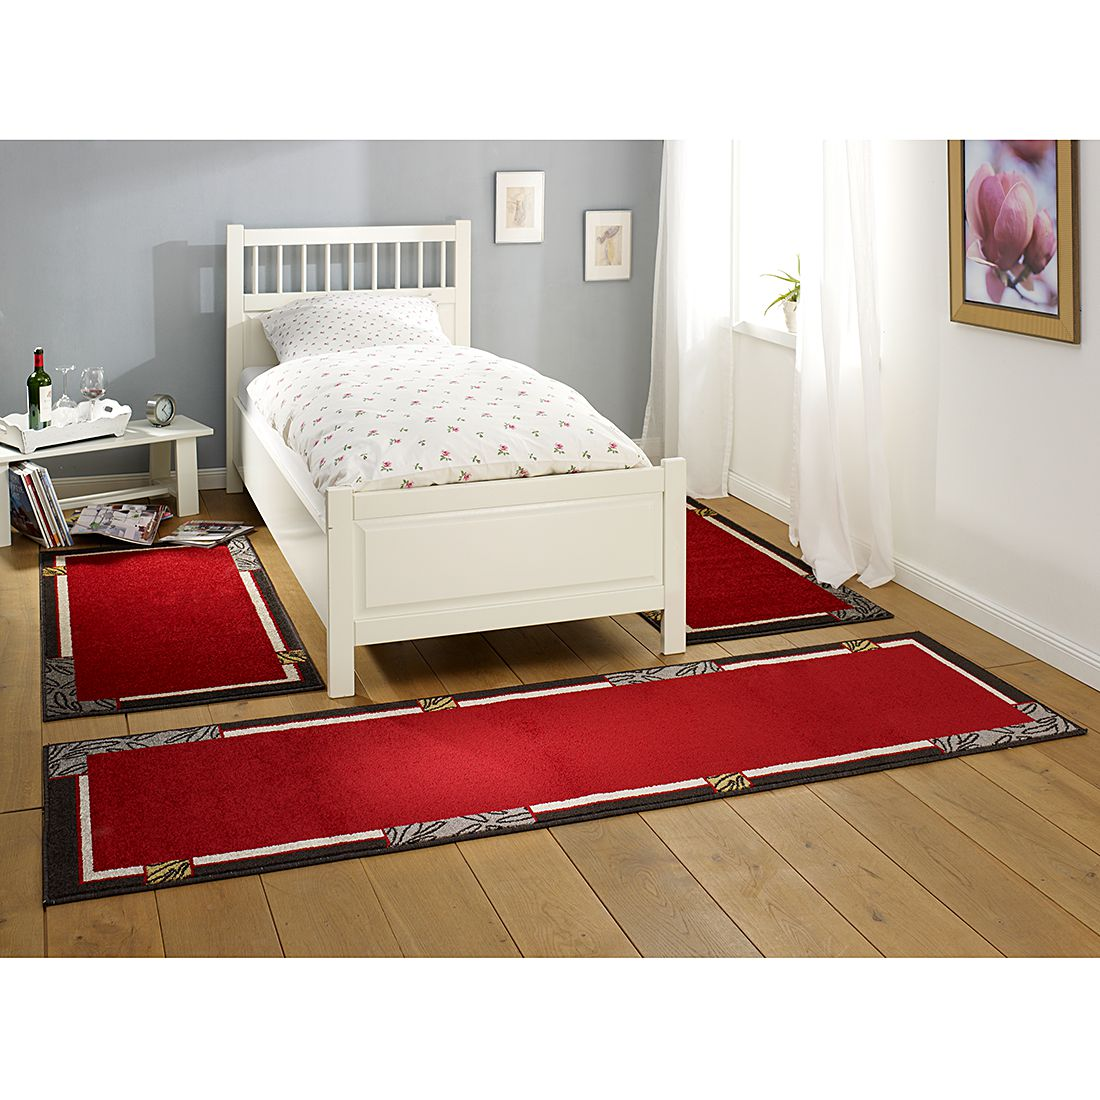 Descente de lit Lectus I - Rouge, Hanse Home Collection